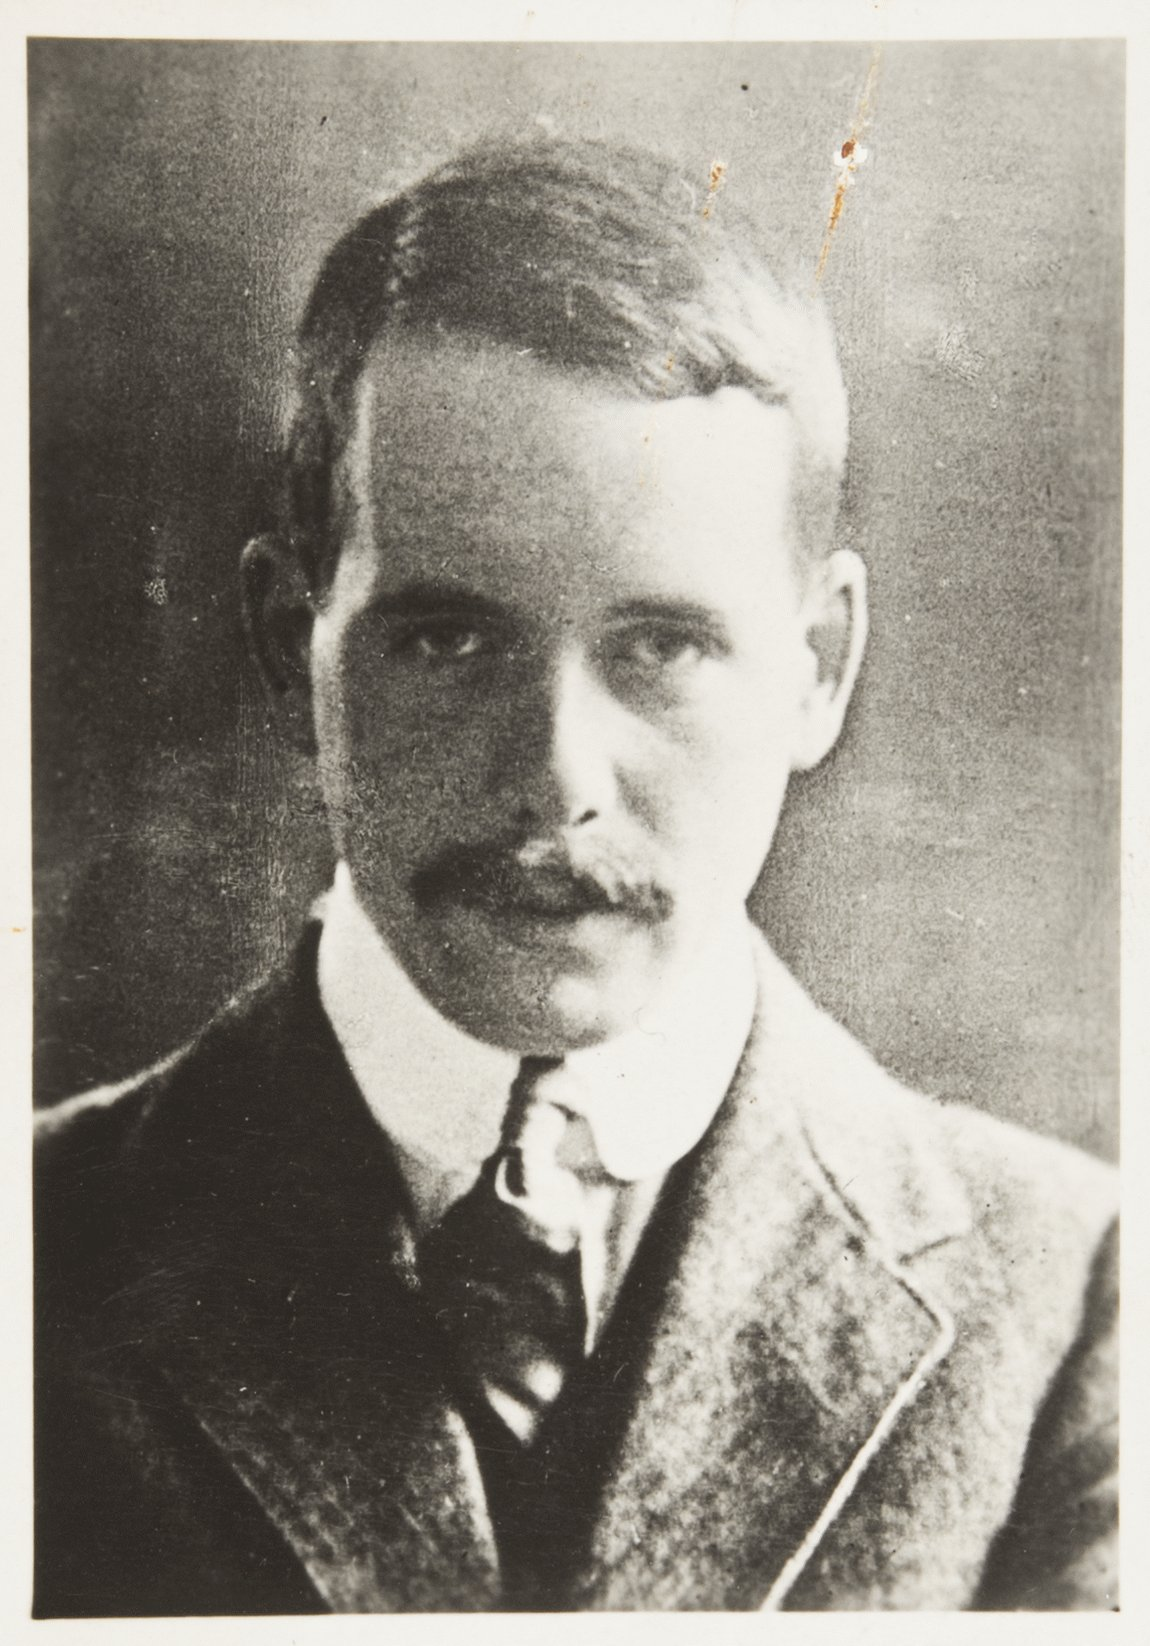 major breakthrough in physics realized by henry gwyn jeffreys moseley A branch of physics that assumed major stature and in 1914 the british physicist henry gwyn jeffreys moseley used his x a breakthrough in accelerator.